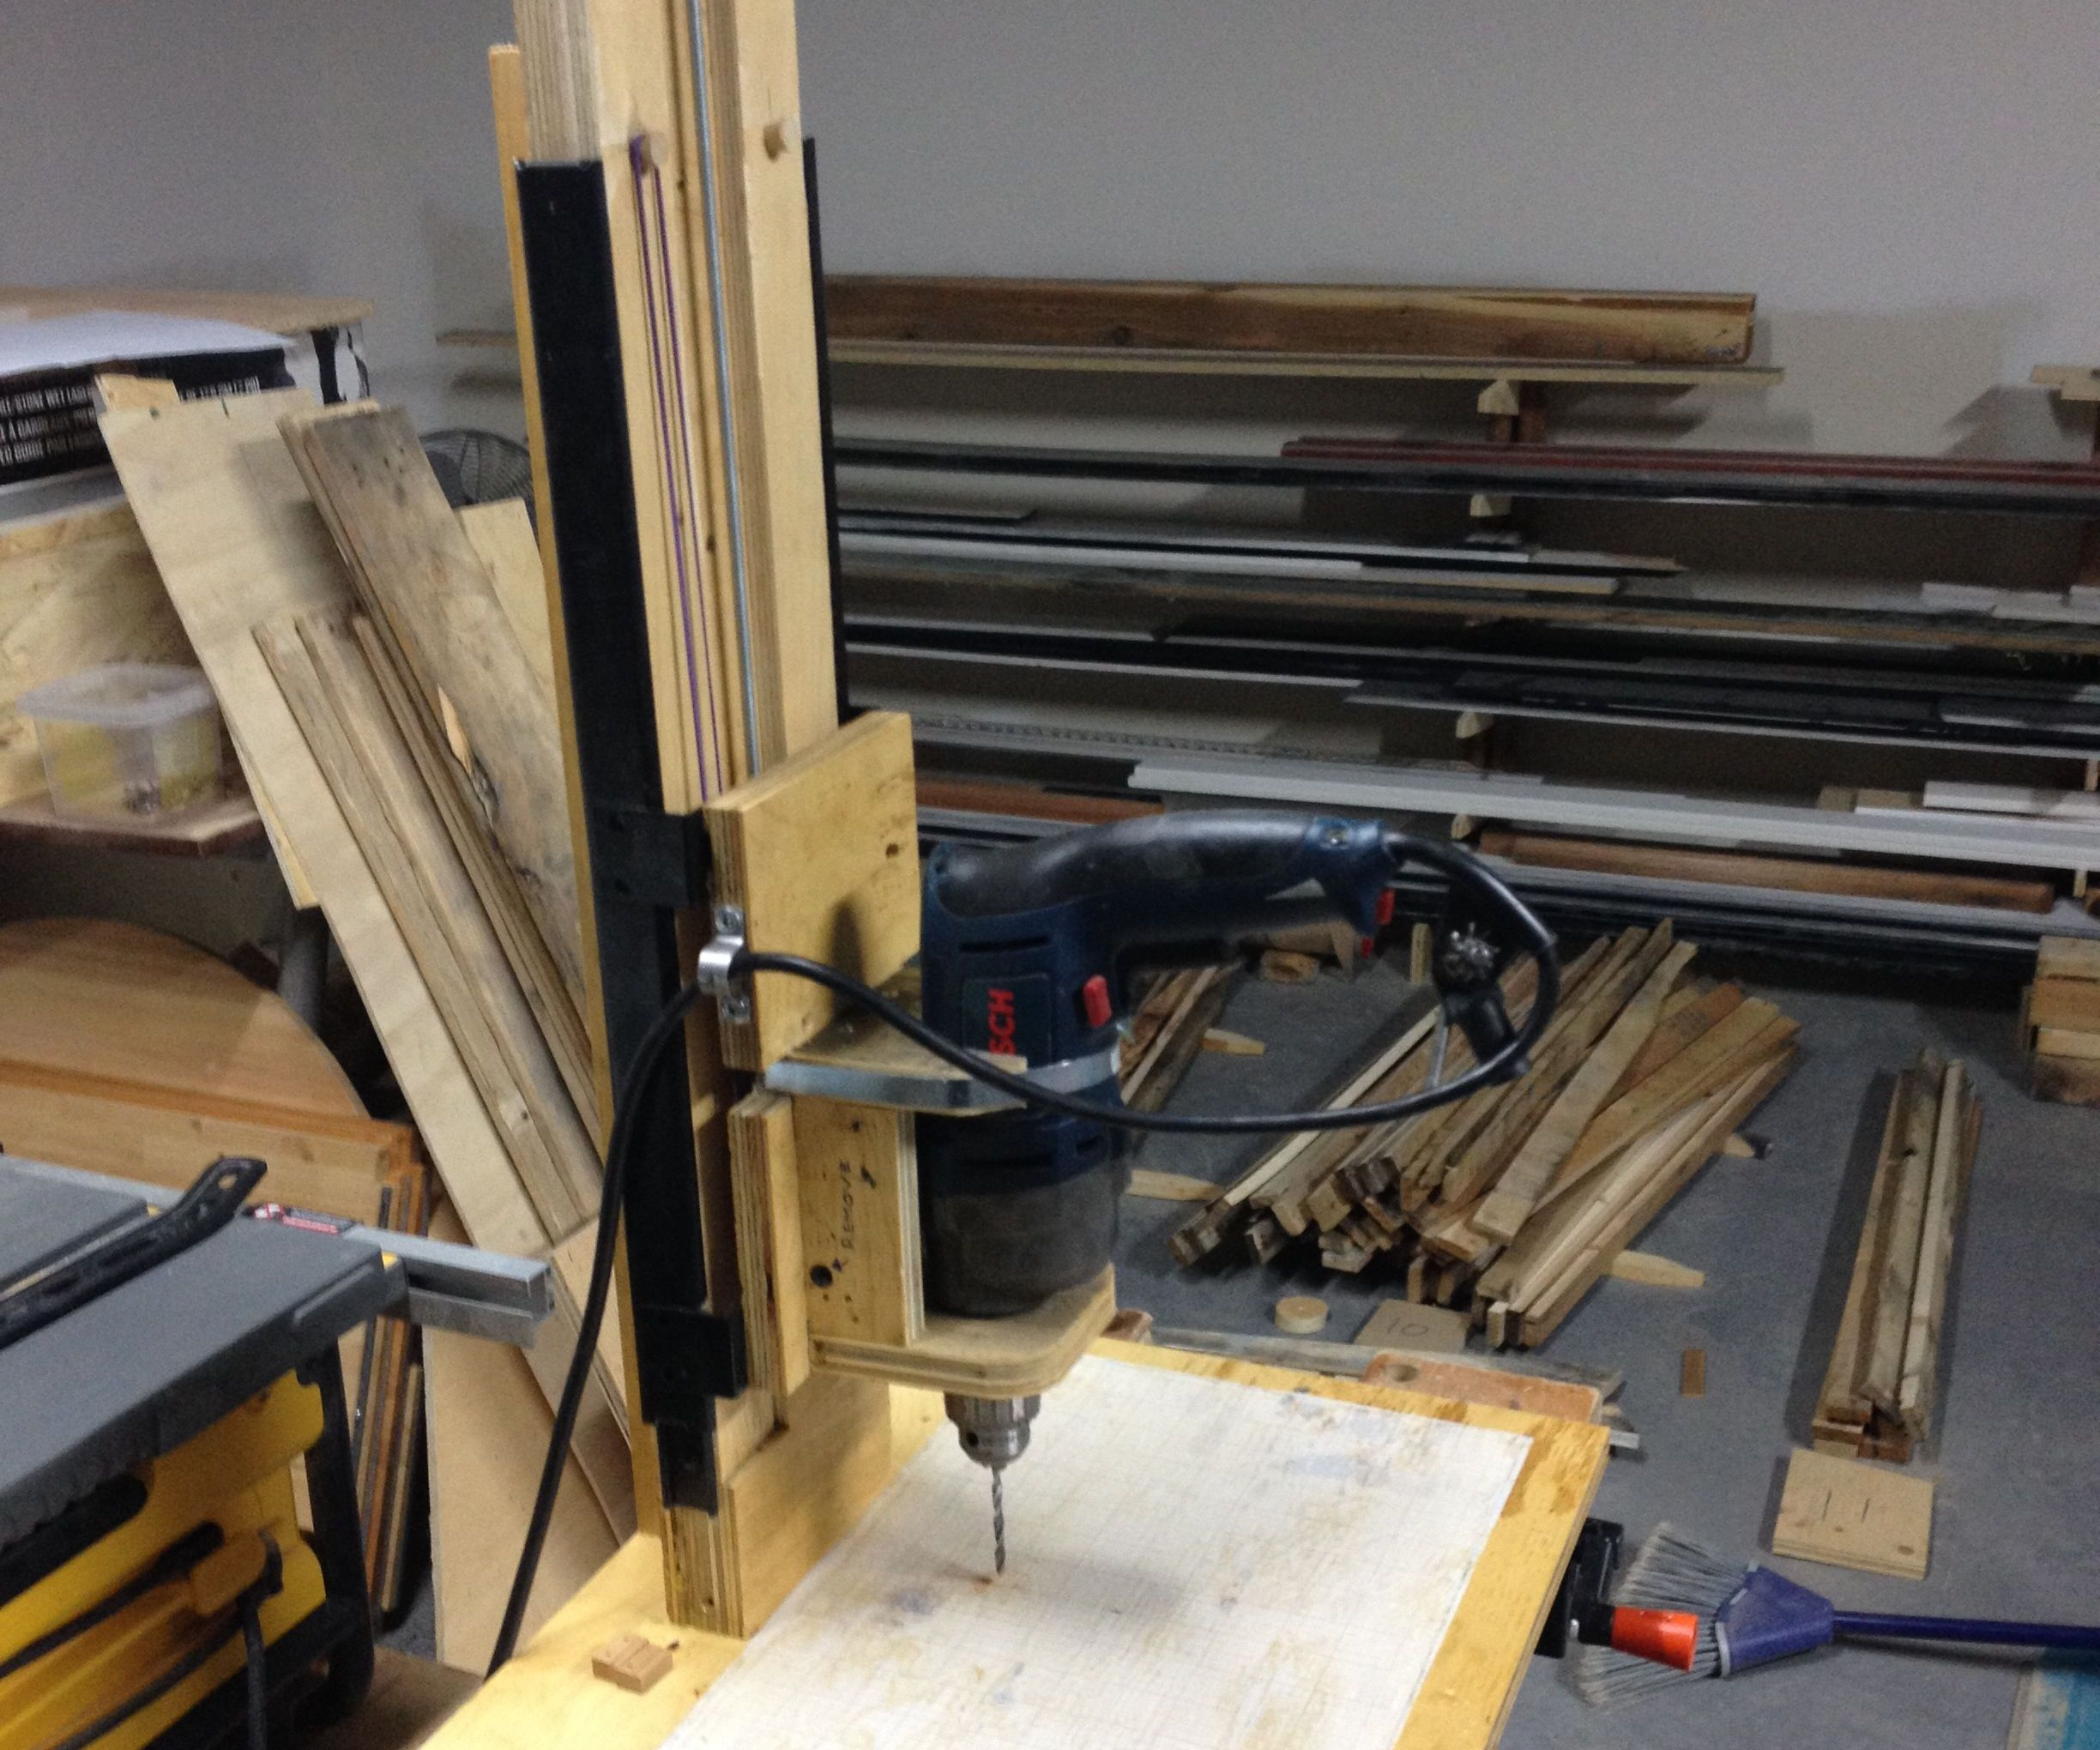 DIY Drill Press with Rubber Band Suspension